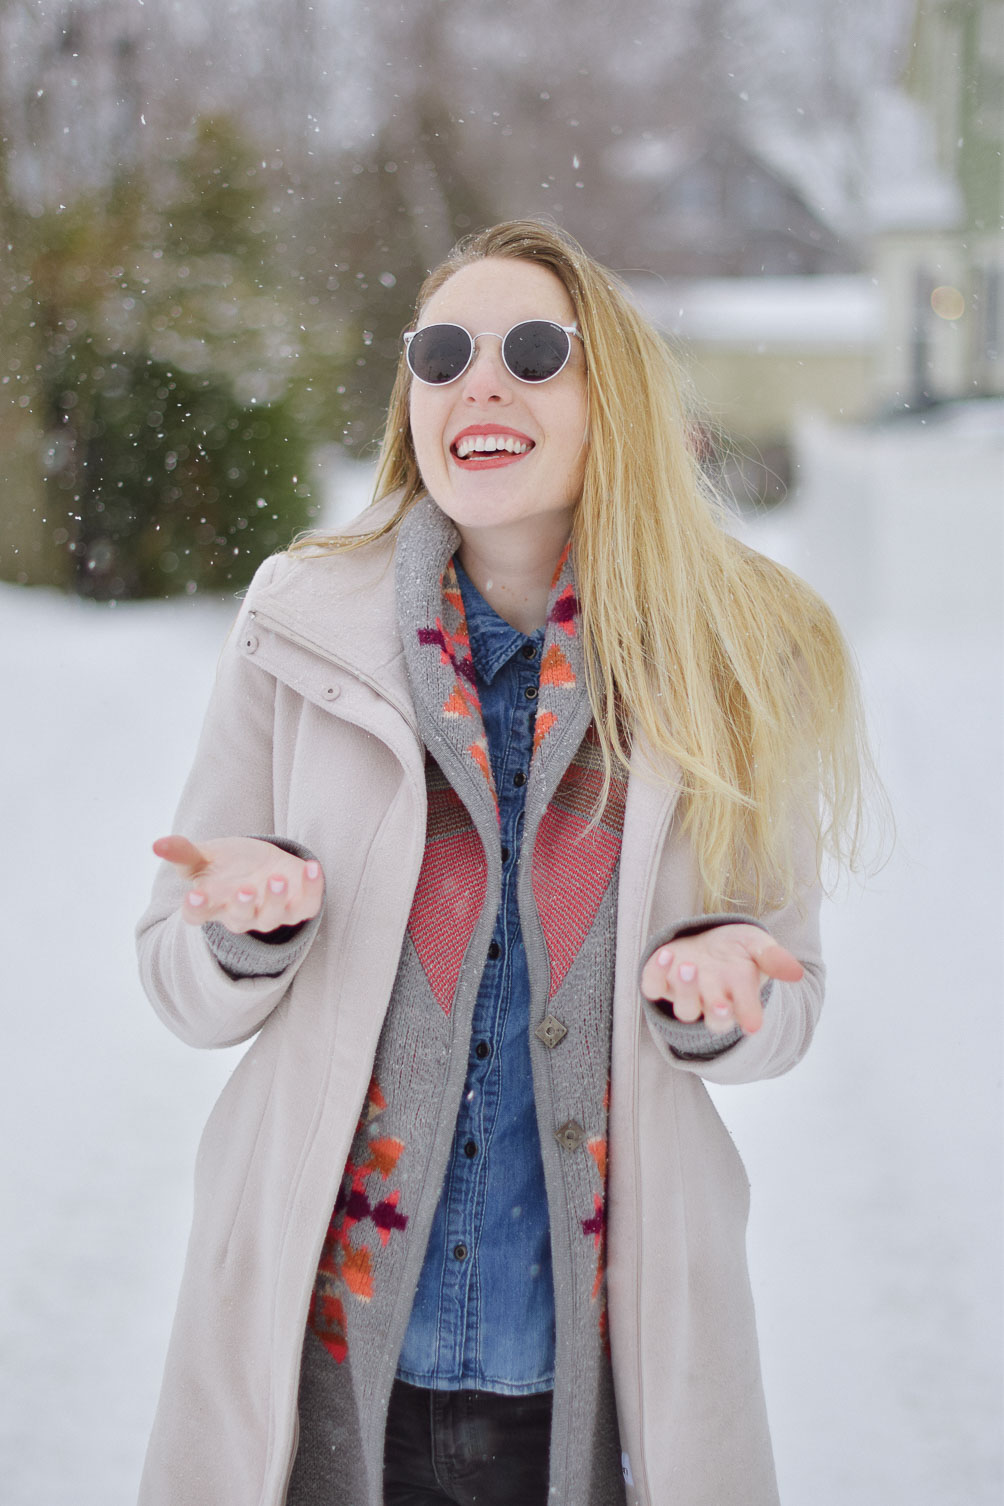 styling this cozy winter look with an aztec print sweater, chambray shirt, gray skinny jeans, and round sunglasses